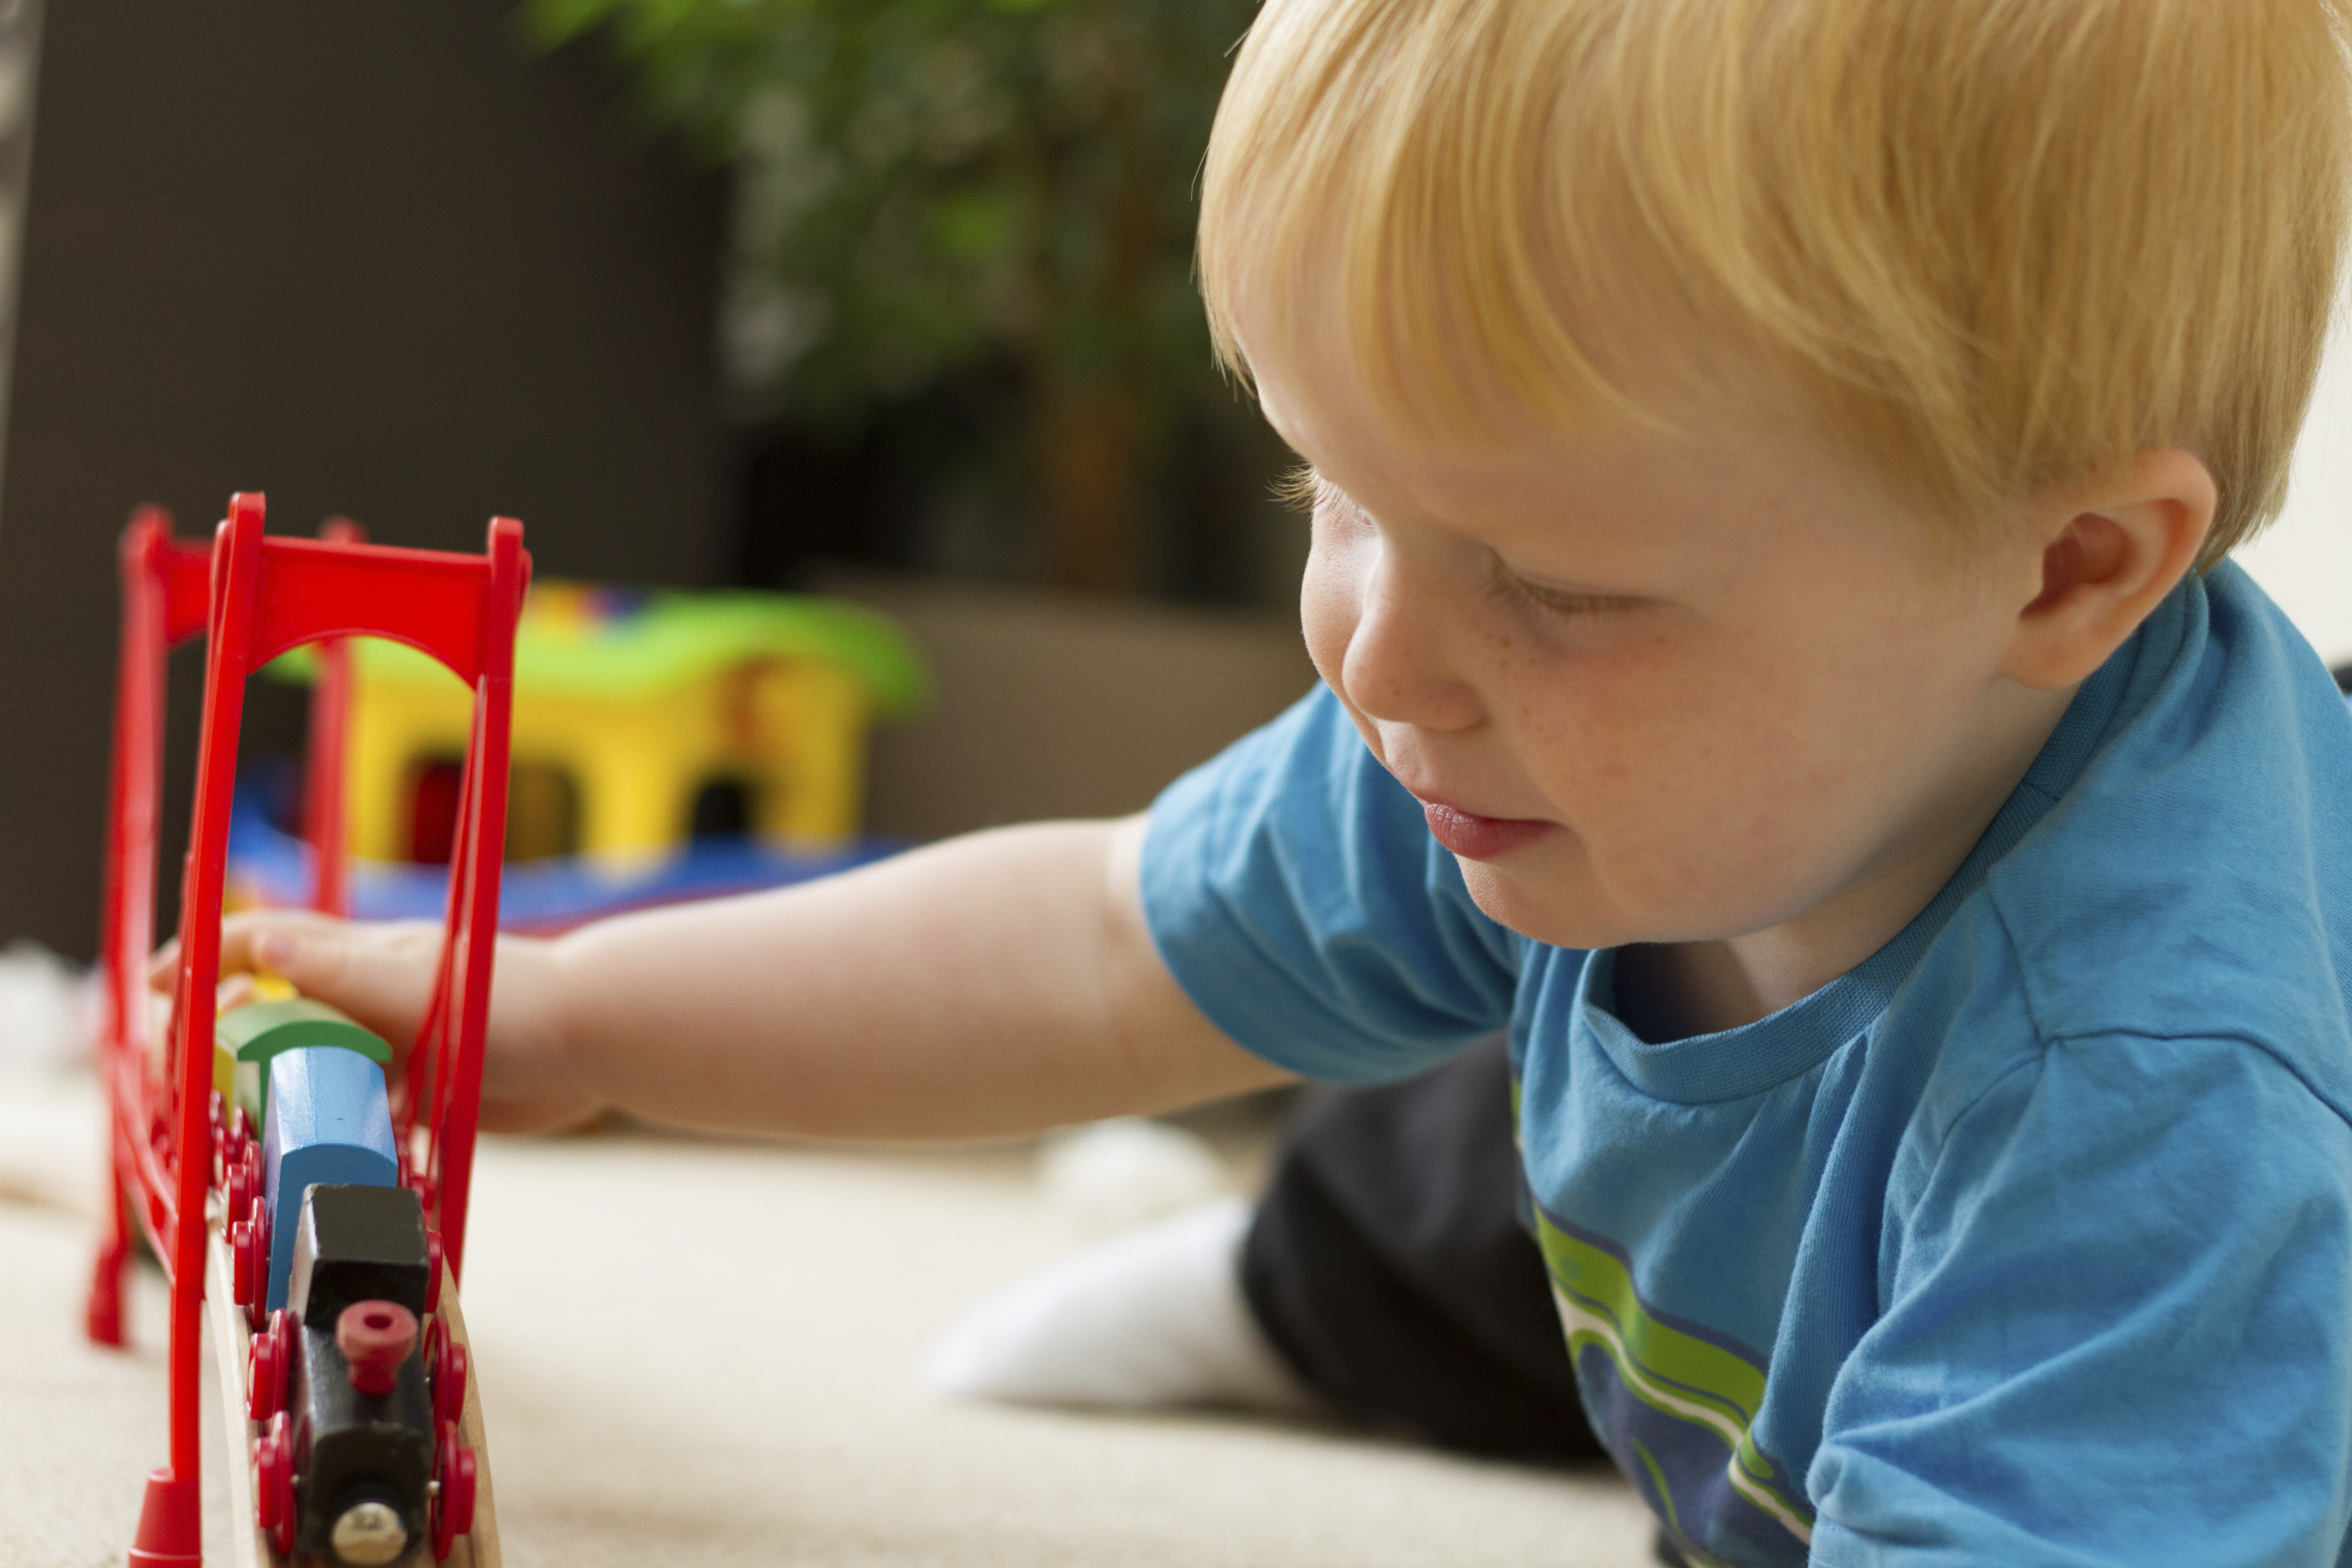 Guide to Buying Age Appropriate Gifts for Kids